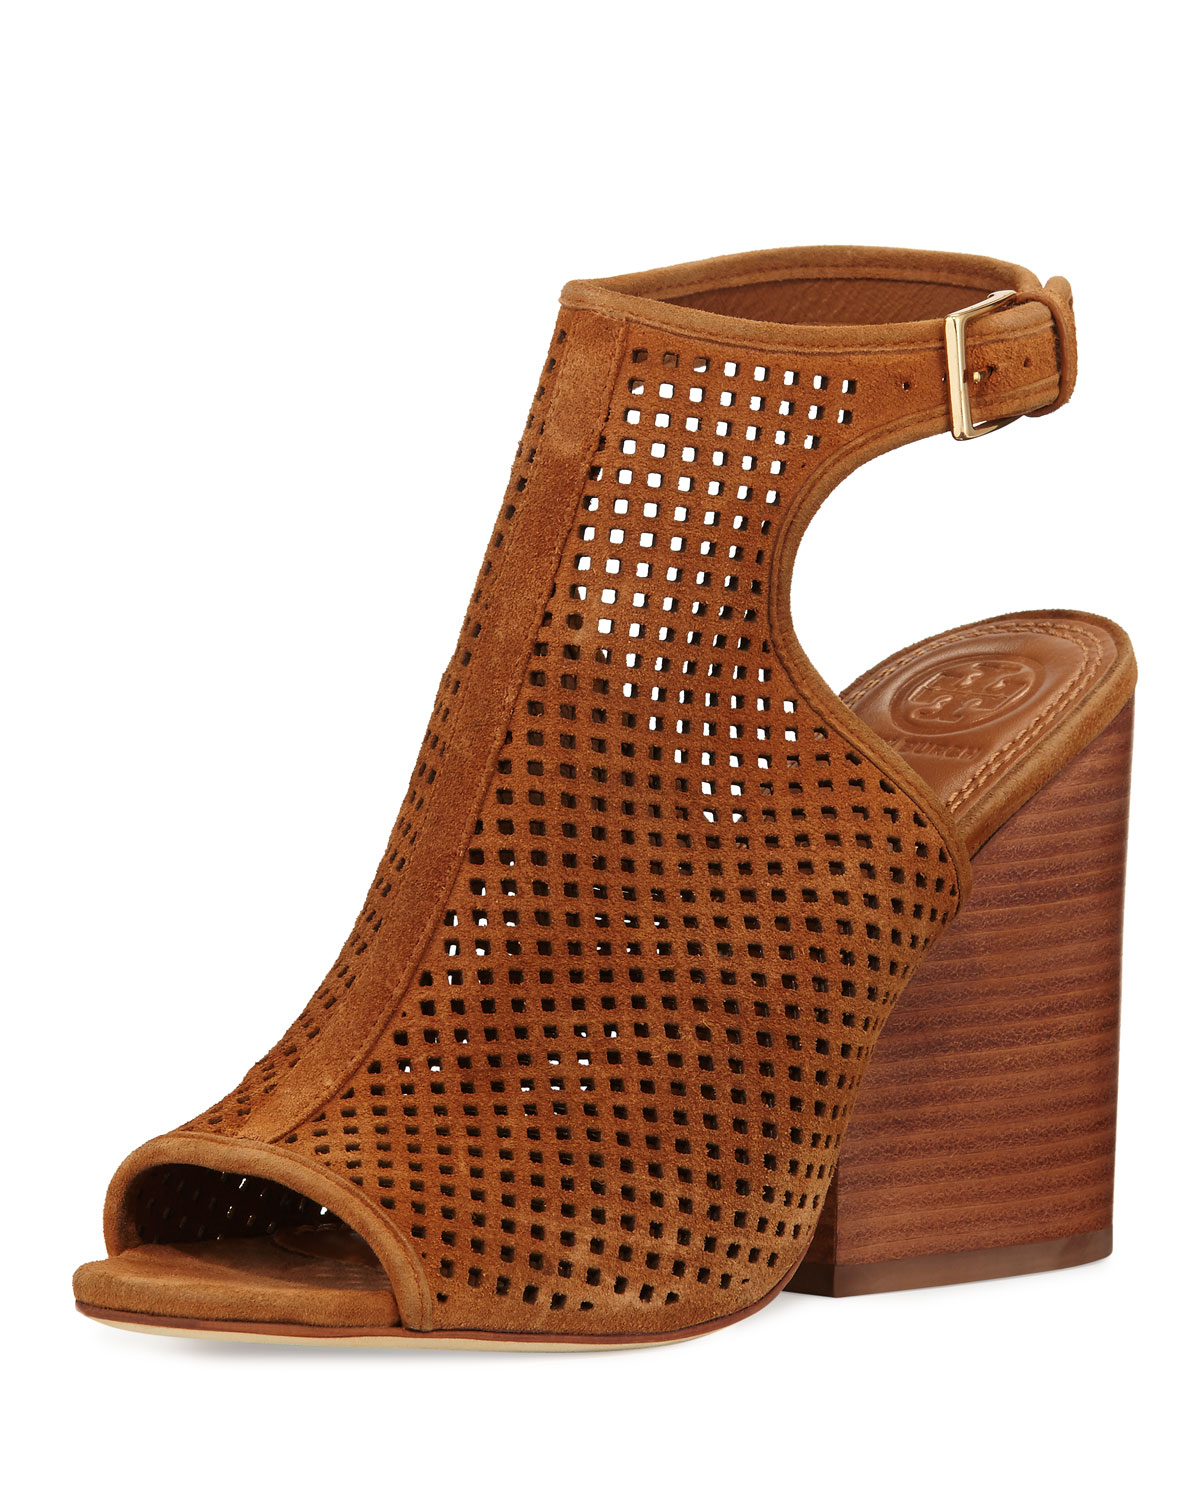 b8f4442400c3 Tory Burch Jesse Perforated Open-Toe Bootie